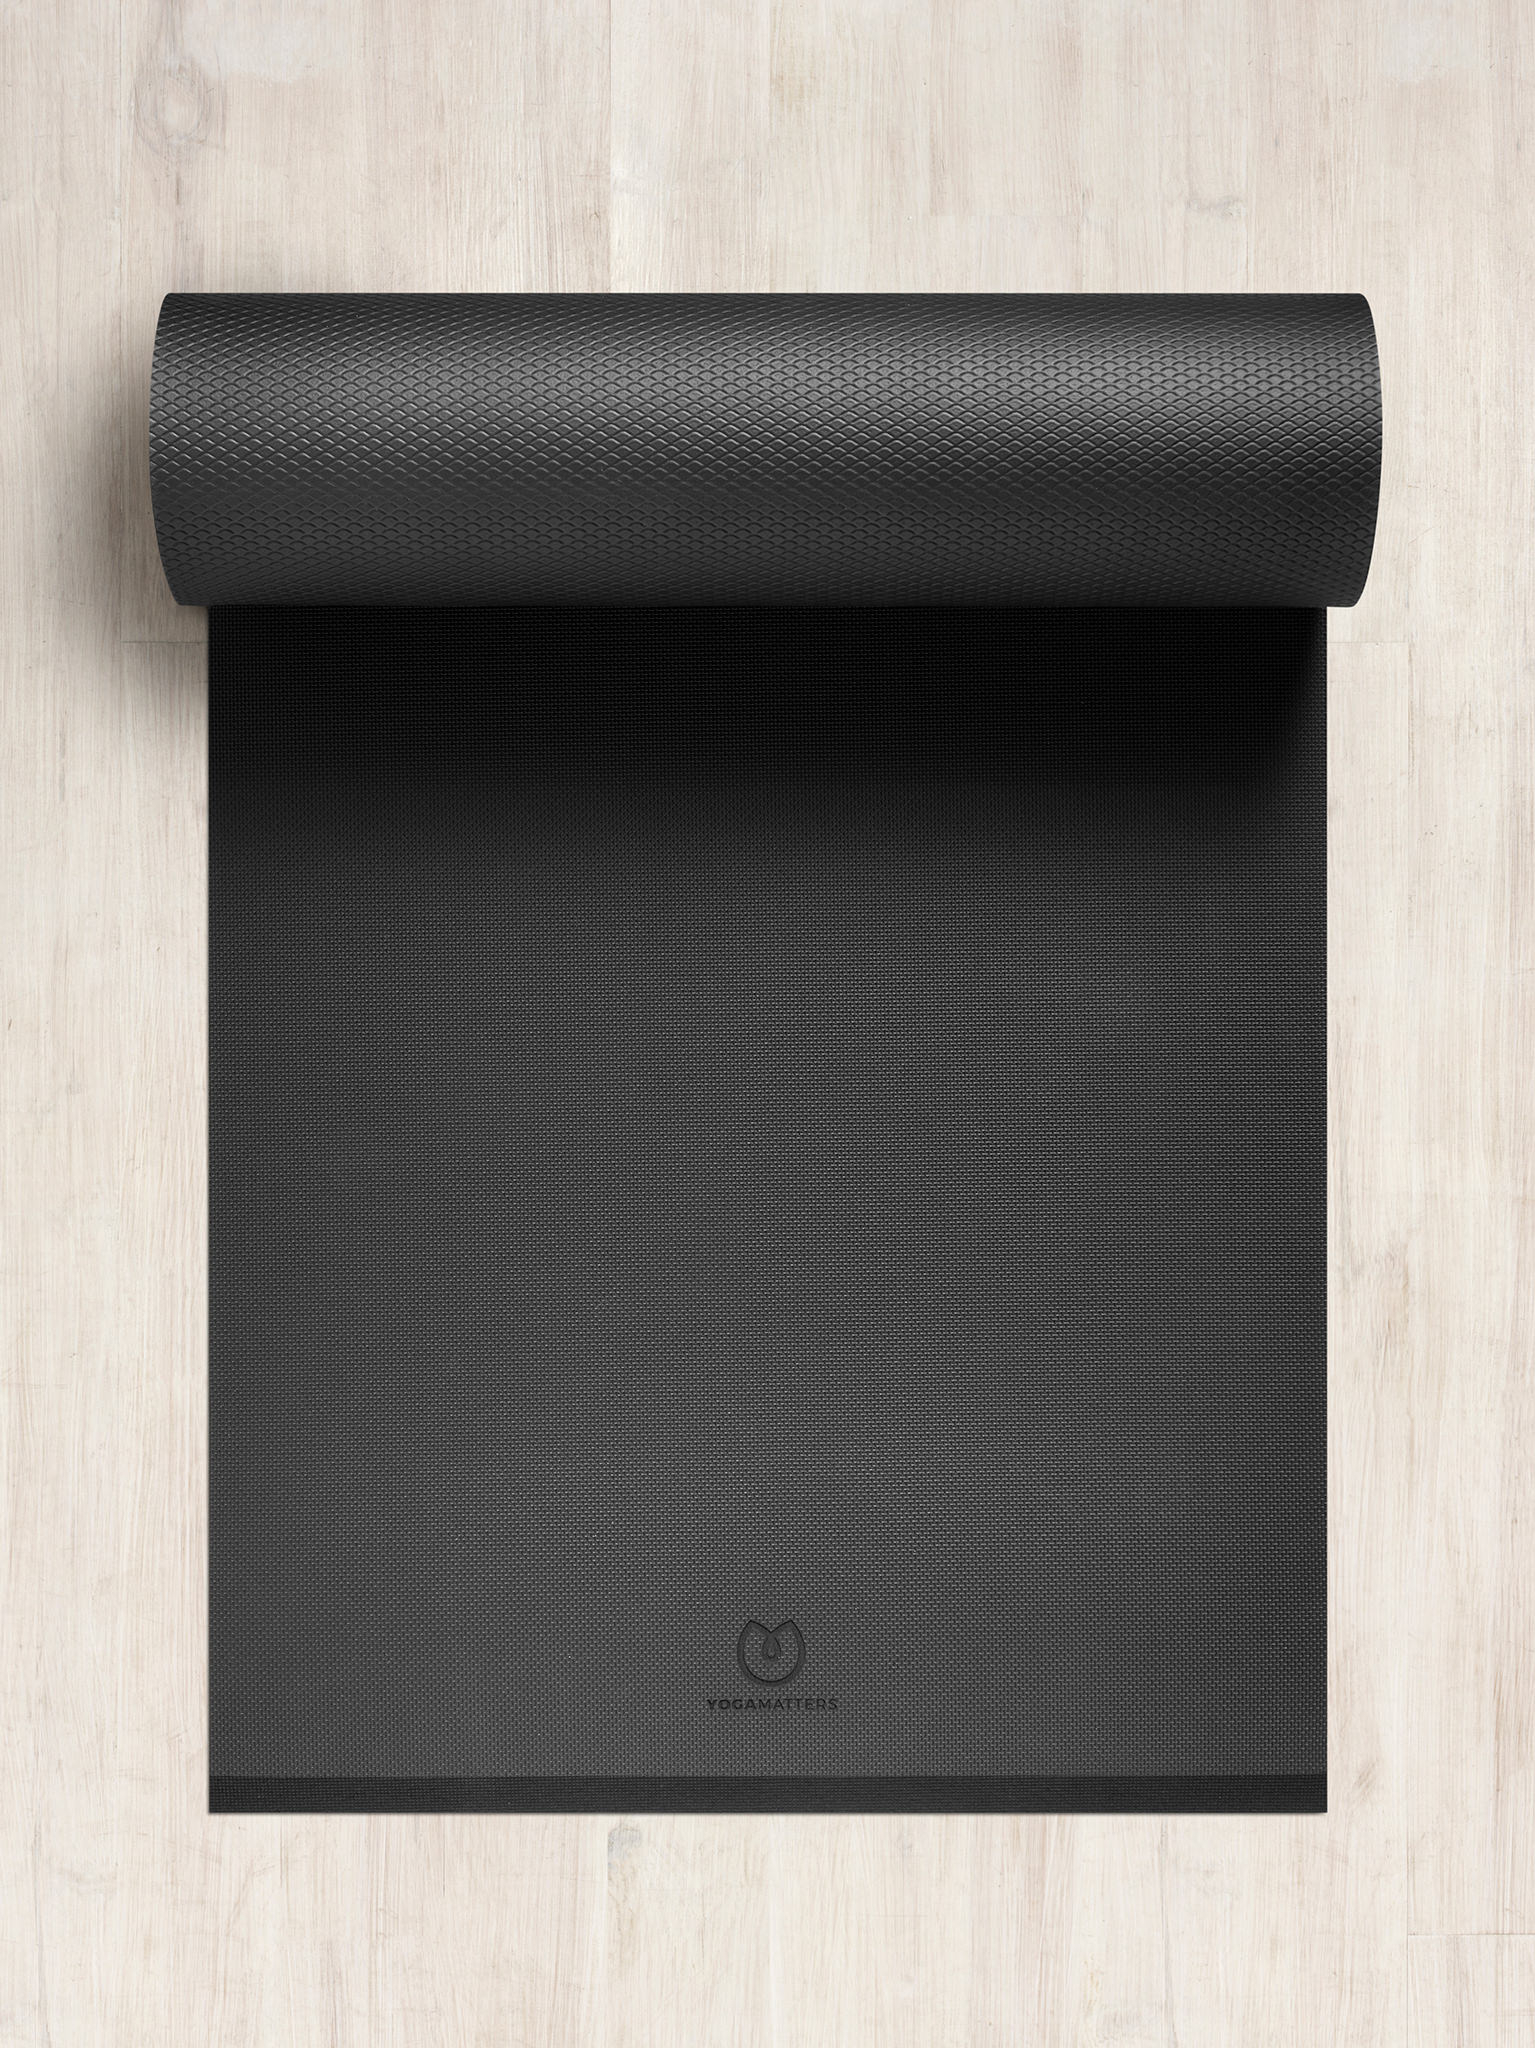 Yogamatters Ultra Exercise Mat - Black